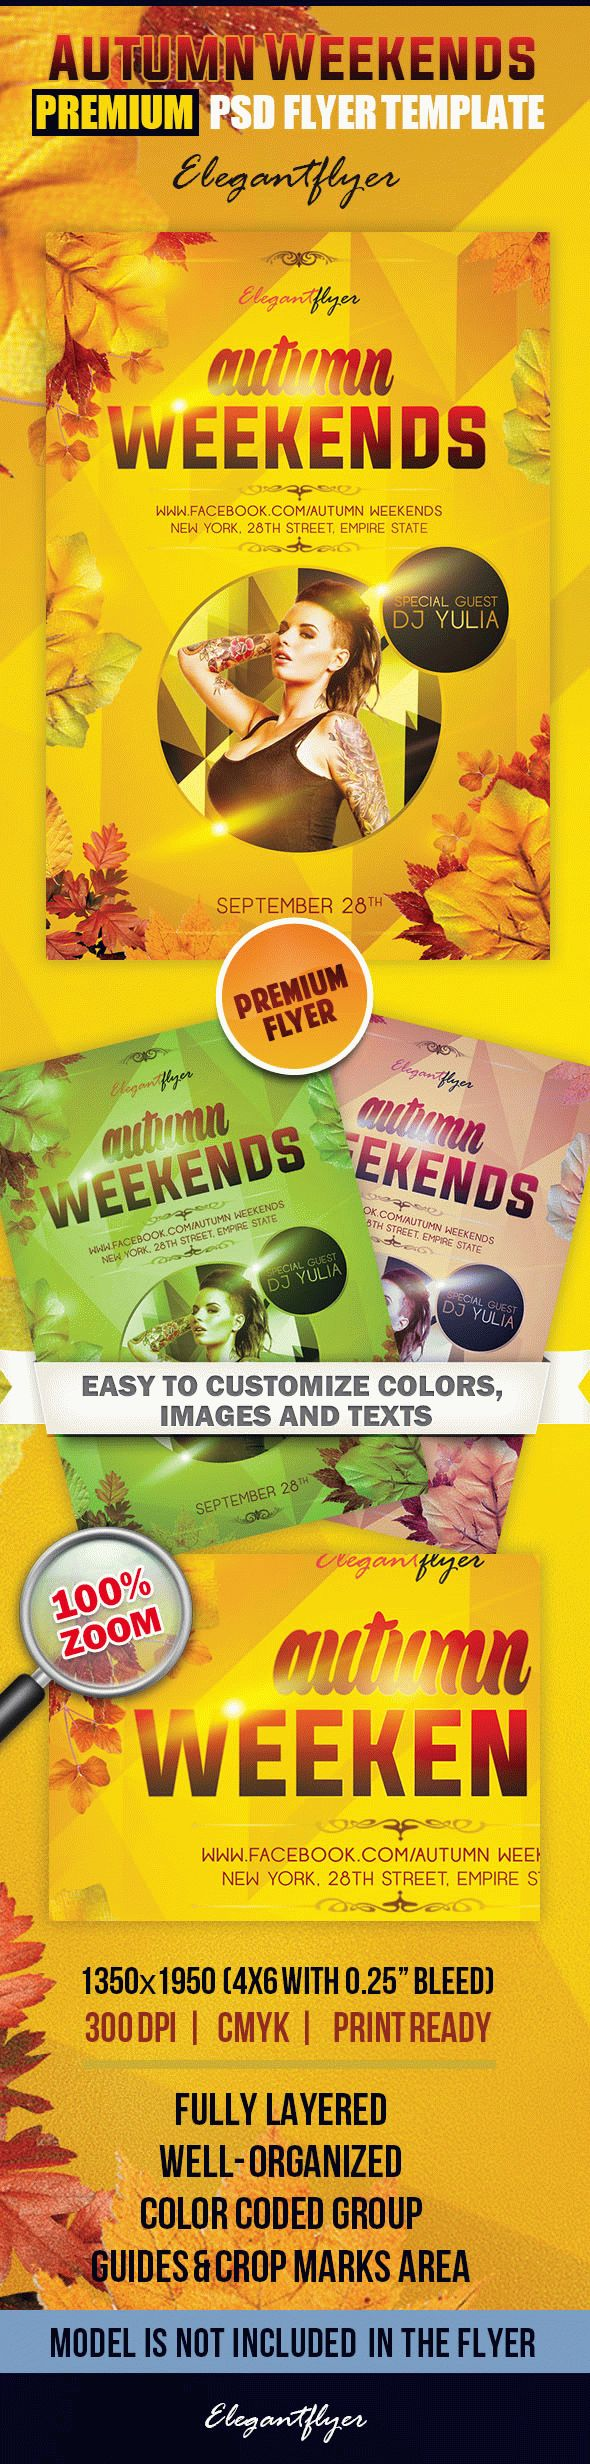 Autumn Weekends – Premium Club flyer PSD Template